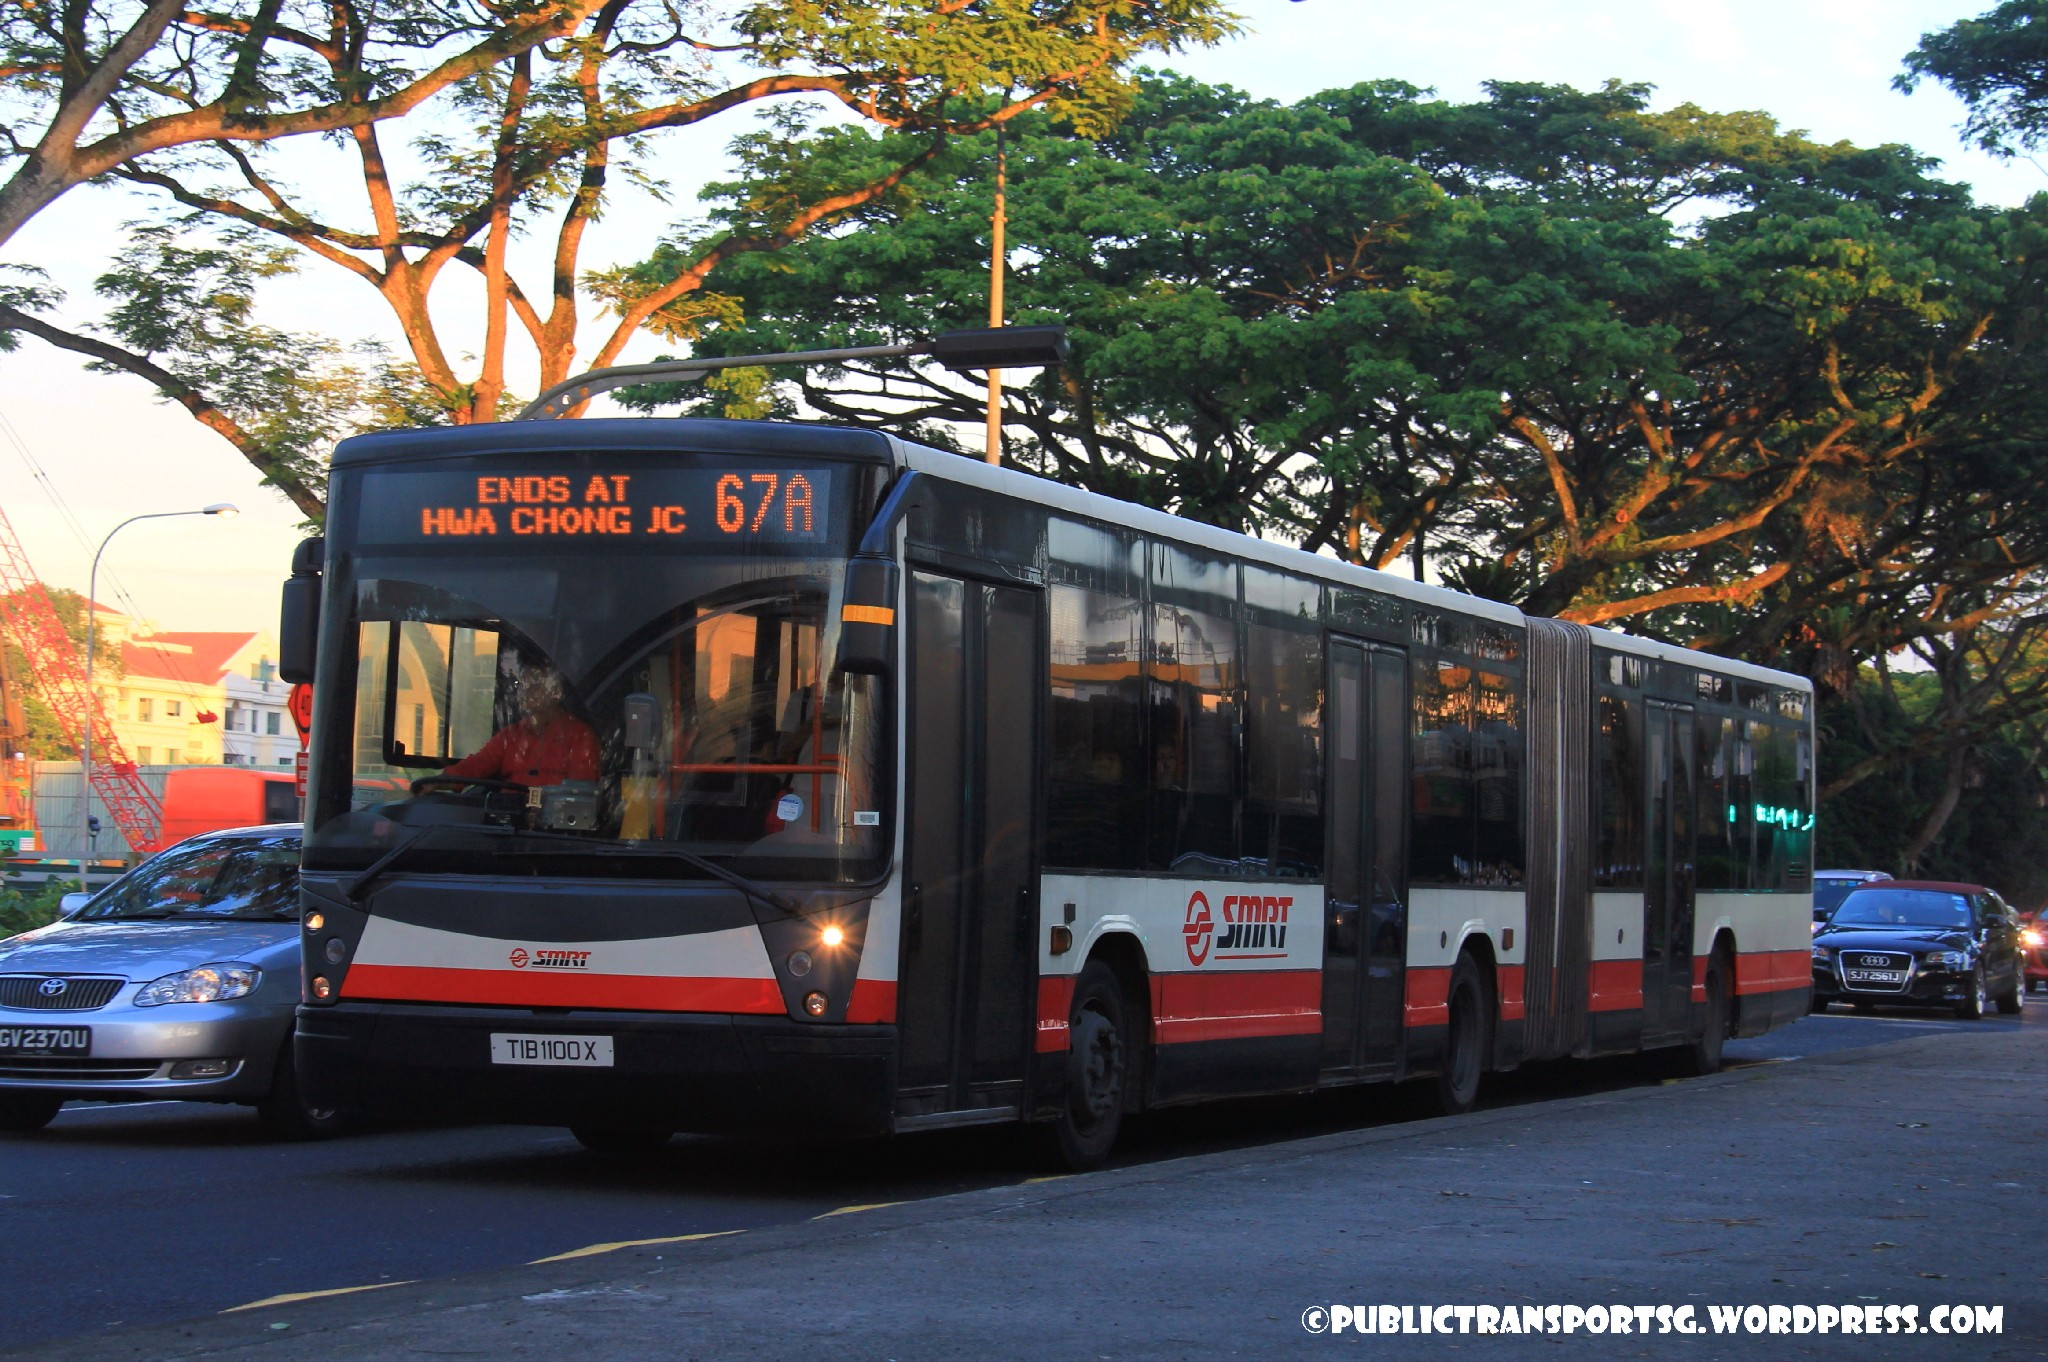 Smrt bus service 67 public transport sg for Plaza mercedes benz service